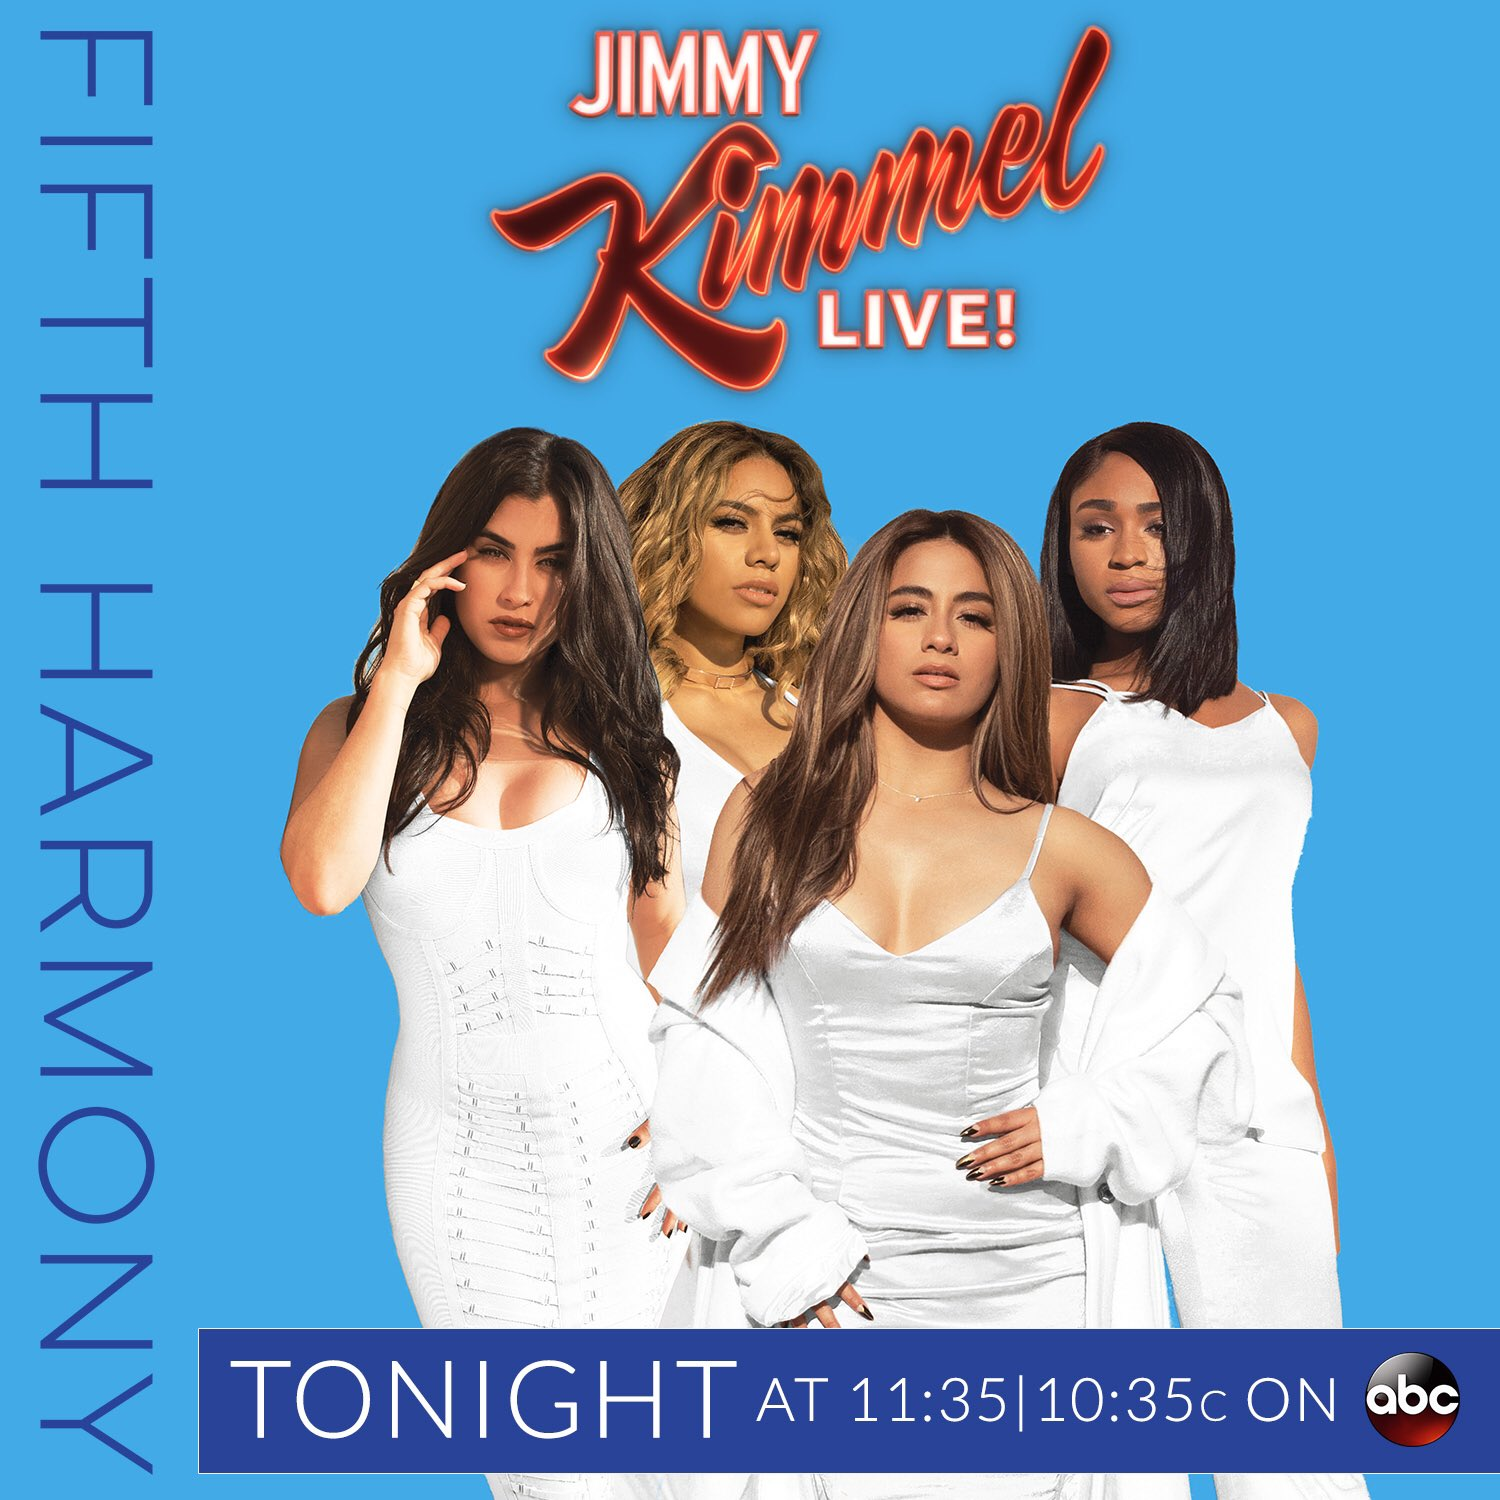 TONIGHT! Dont miss @FifthHarmony on @JimmyKimmelLive live from Brooklyn #KimmelinBrooklyn �� https://t.co/Tdf1SvHGHZ